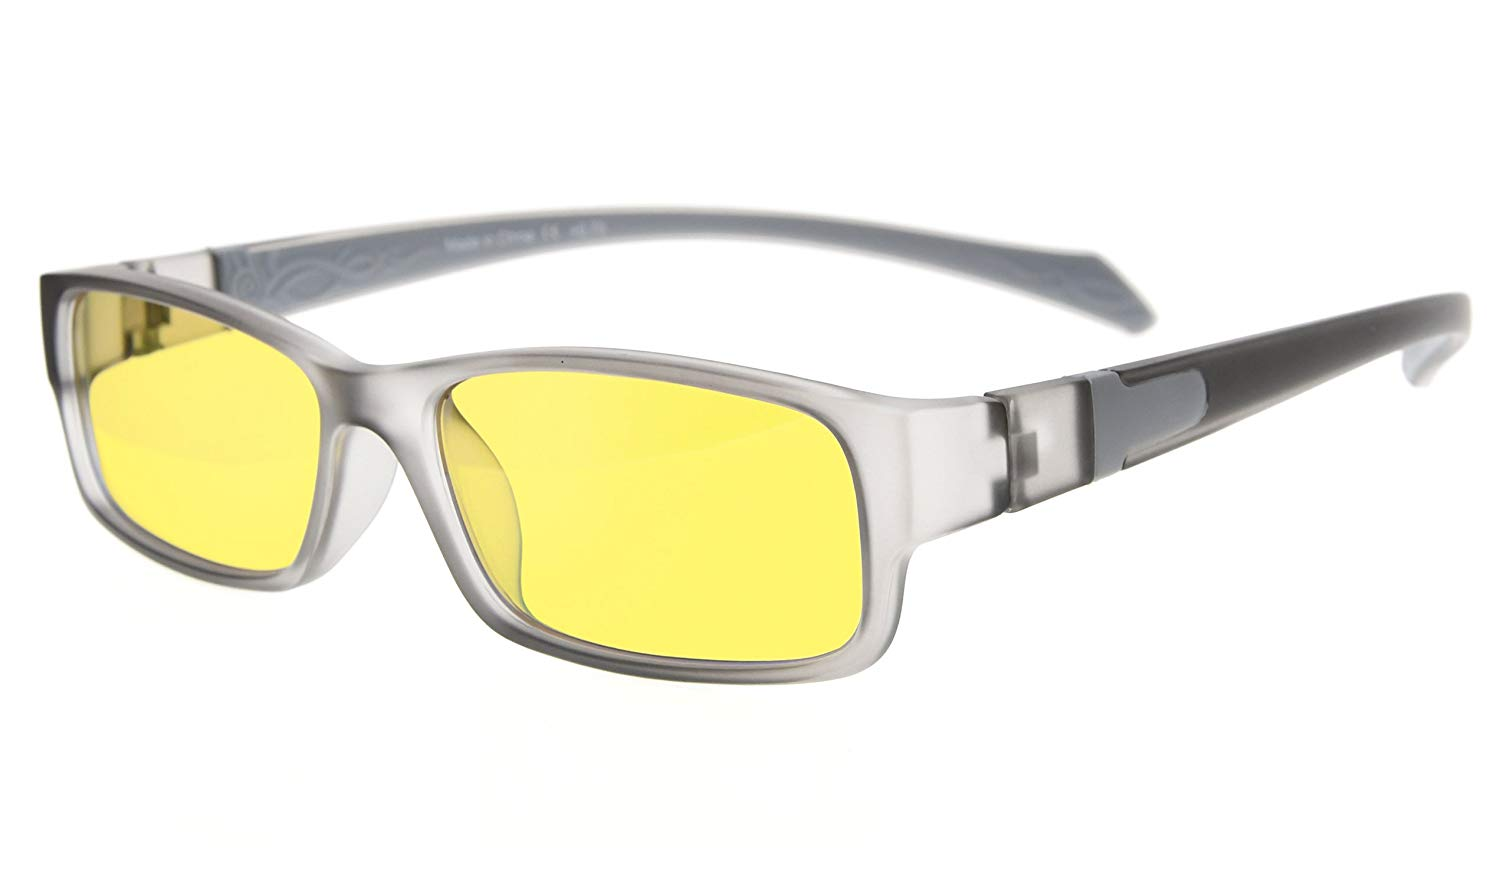 63cee3d404 Computer Reading Glasses Anti Blue Light More than 94% TR90 Frame Yellow  Tinted Lens Grey +1.50 Item NO  CGXM02-Grey-Grey-Arm-150